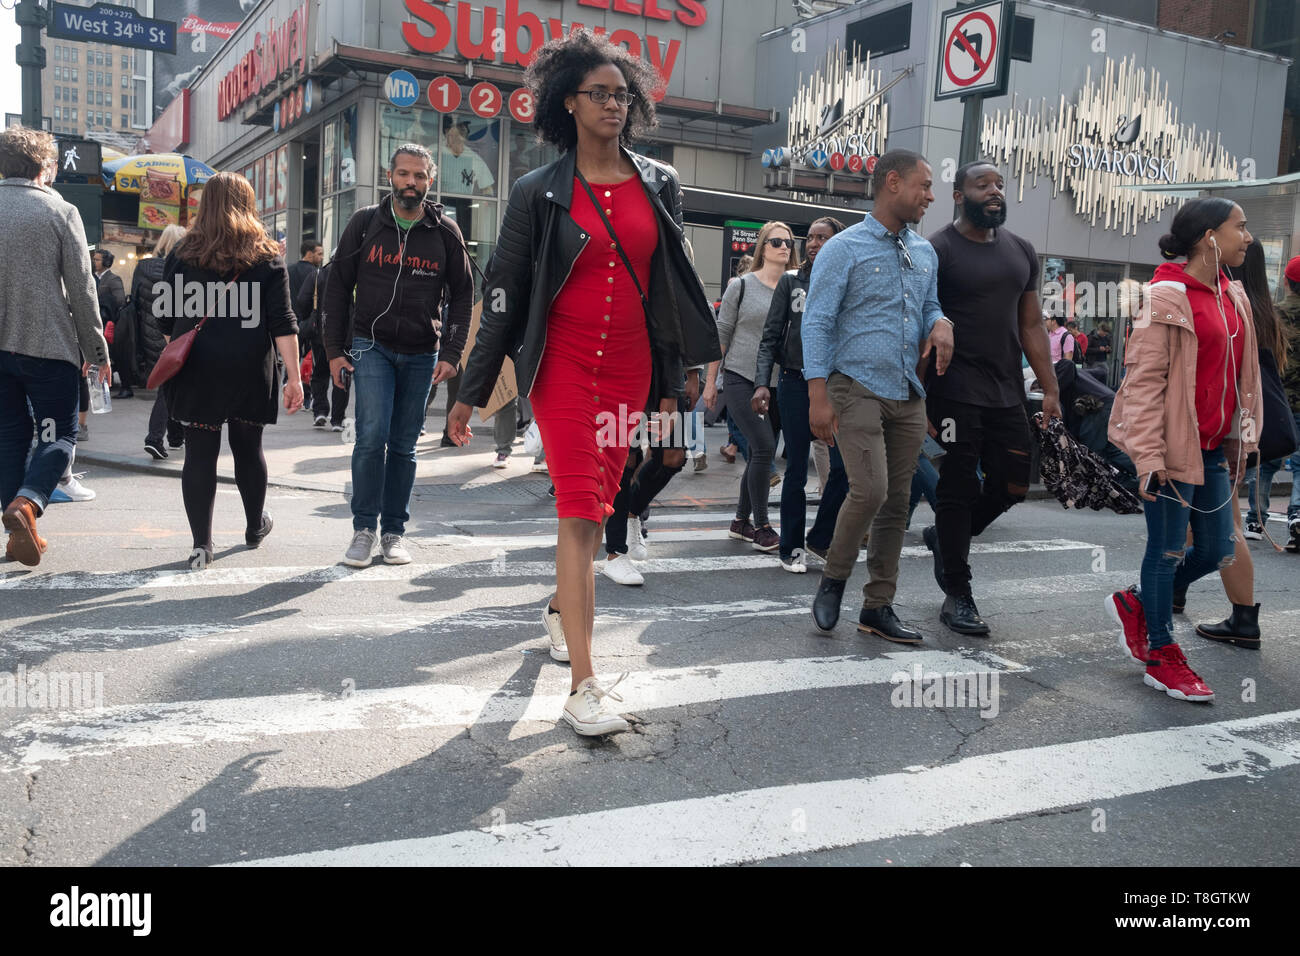 A diverse group of pedestrians on 8th Avenue crossing West 34th Street near Penn Station in Manhattan. Stock Photo